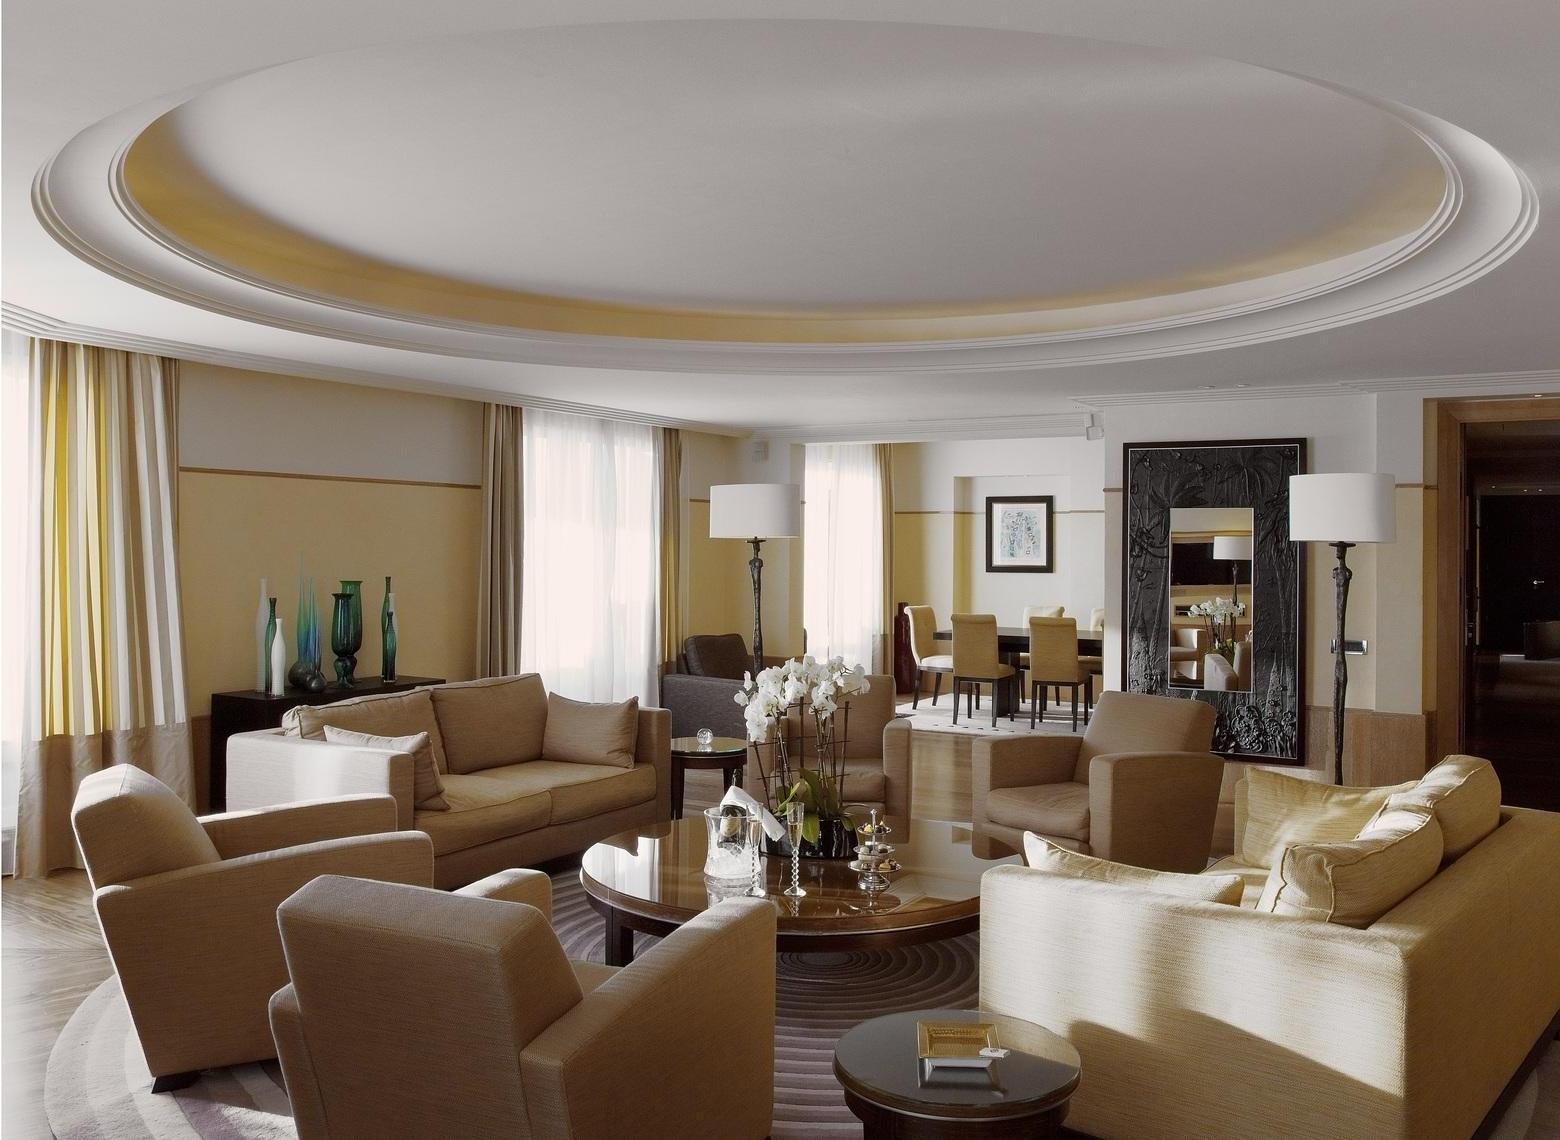 Featured Image of Atlantis Bridge Suite: The Good Place To Live